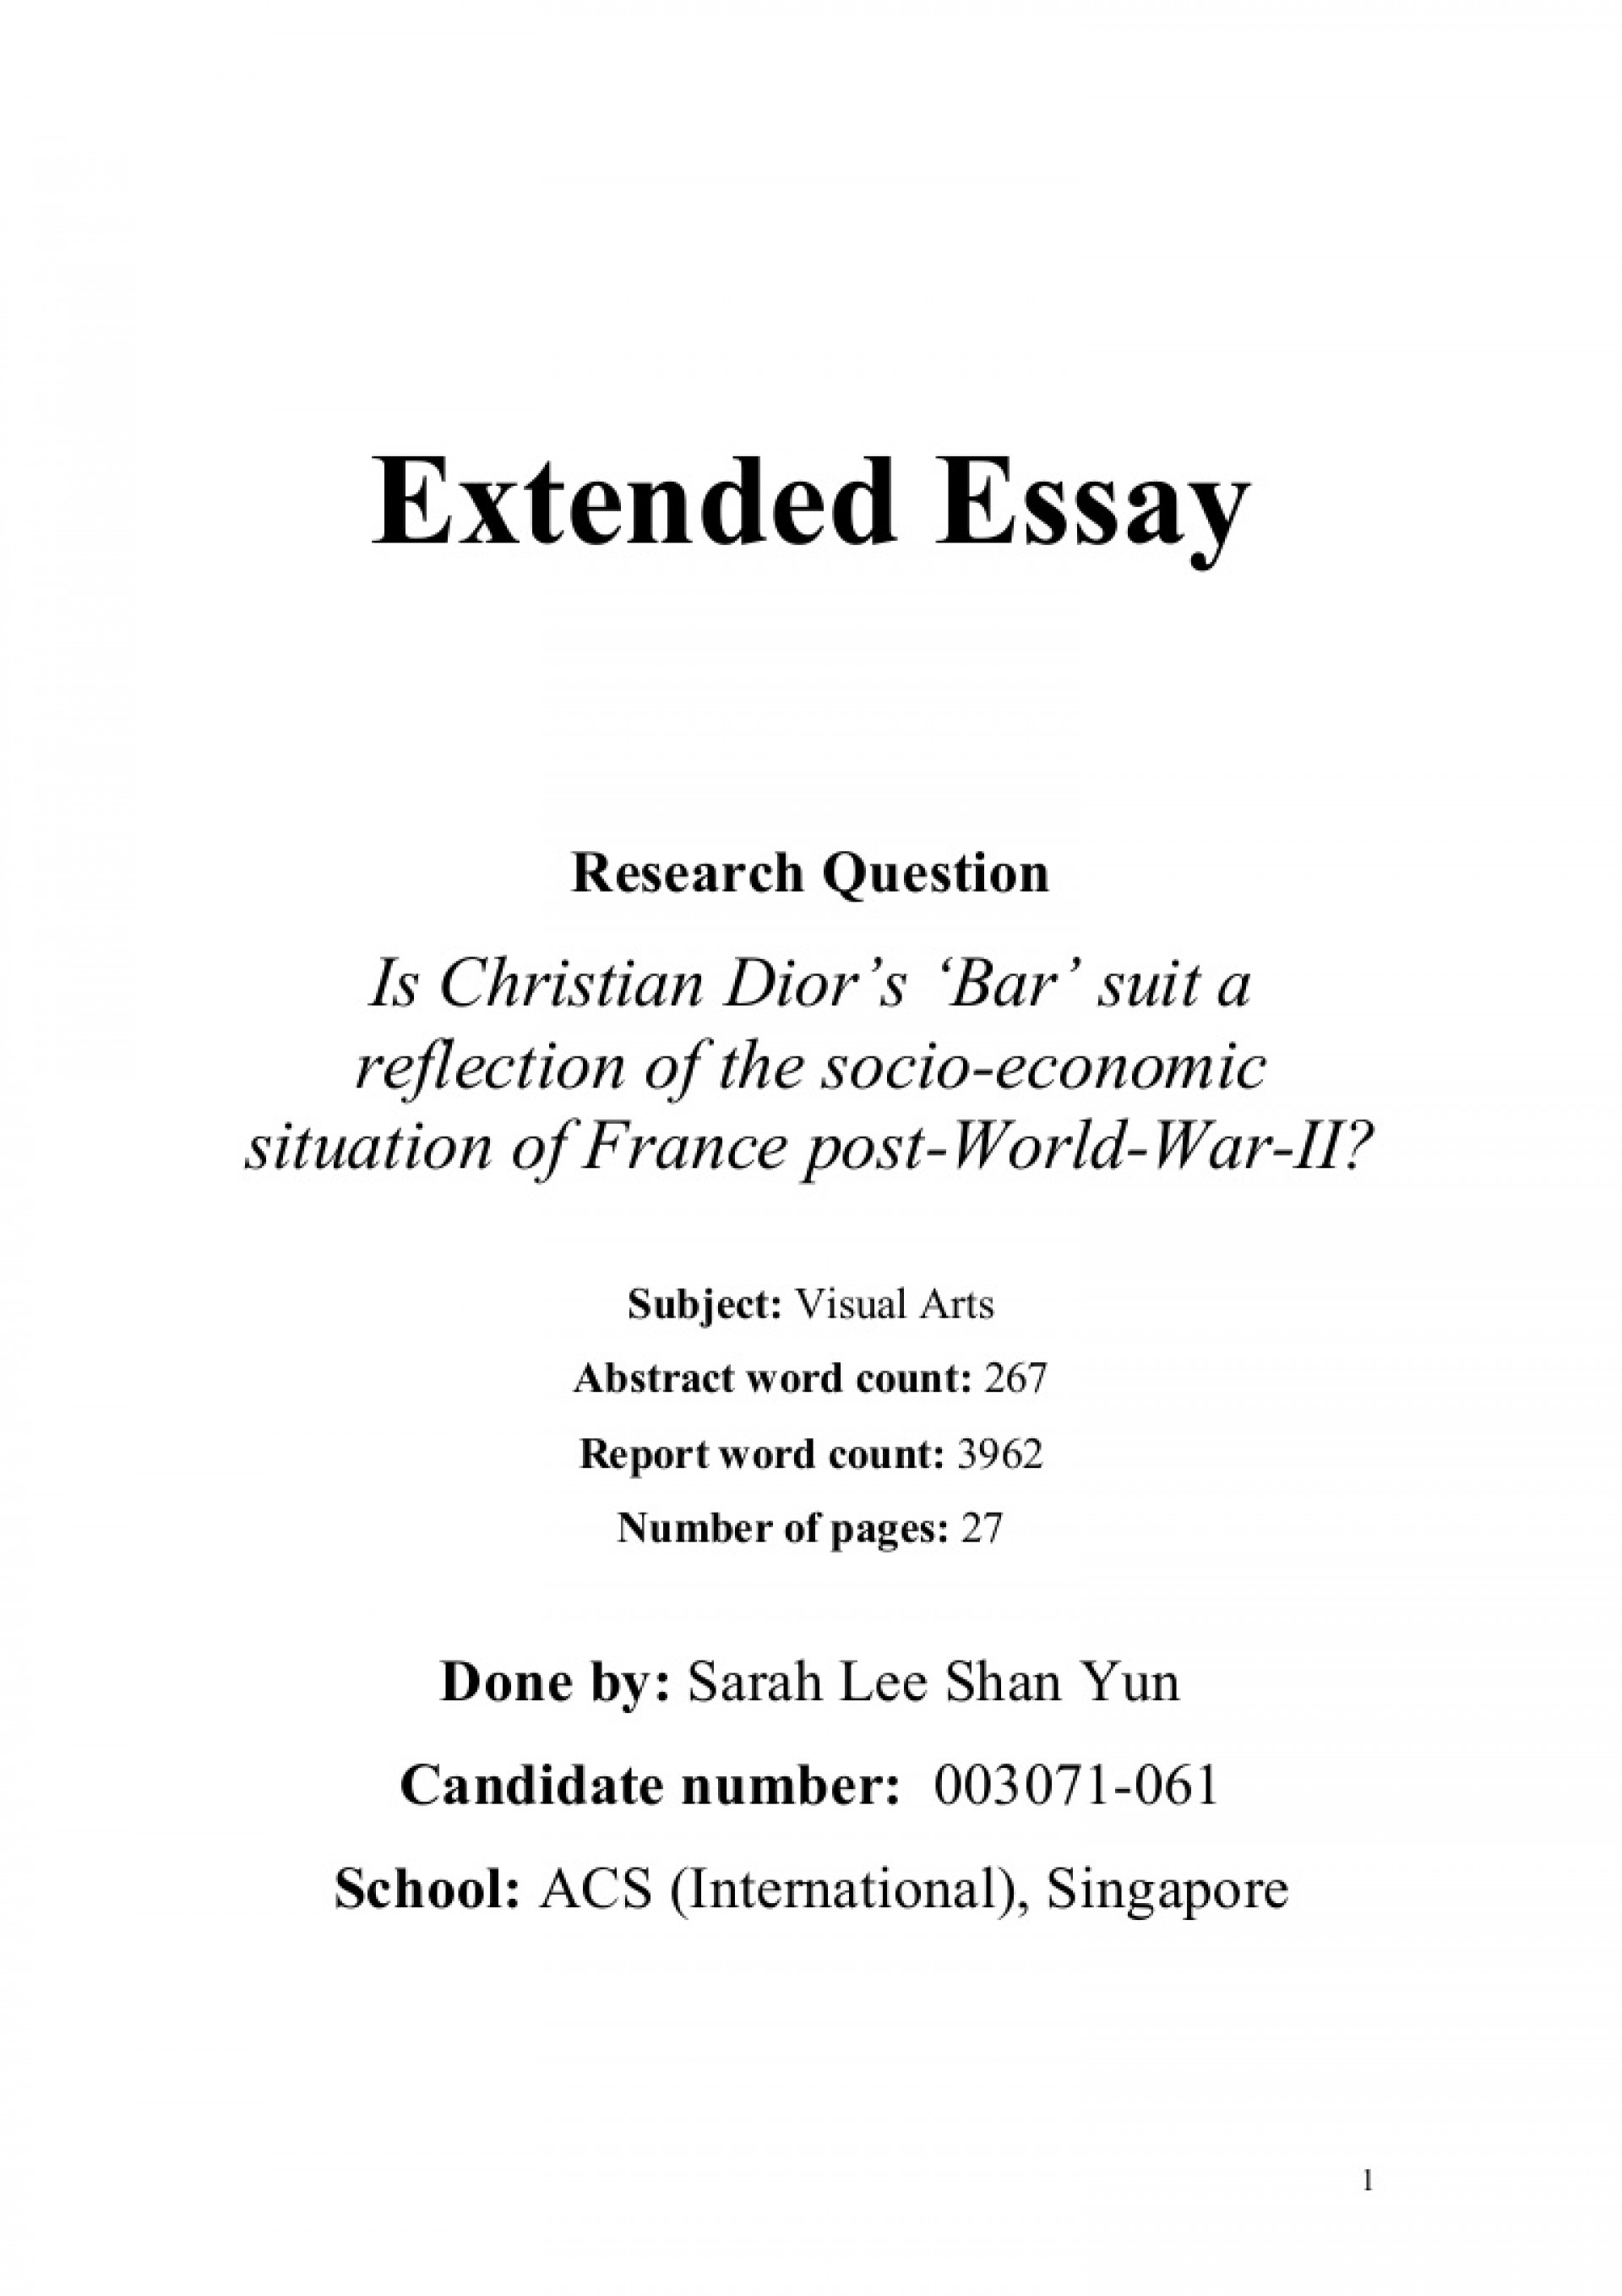 025 Mexican Immigration Topics Research Paper 1650077541 Extended Essay Abstract Striking 1920